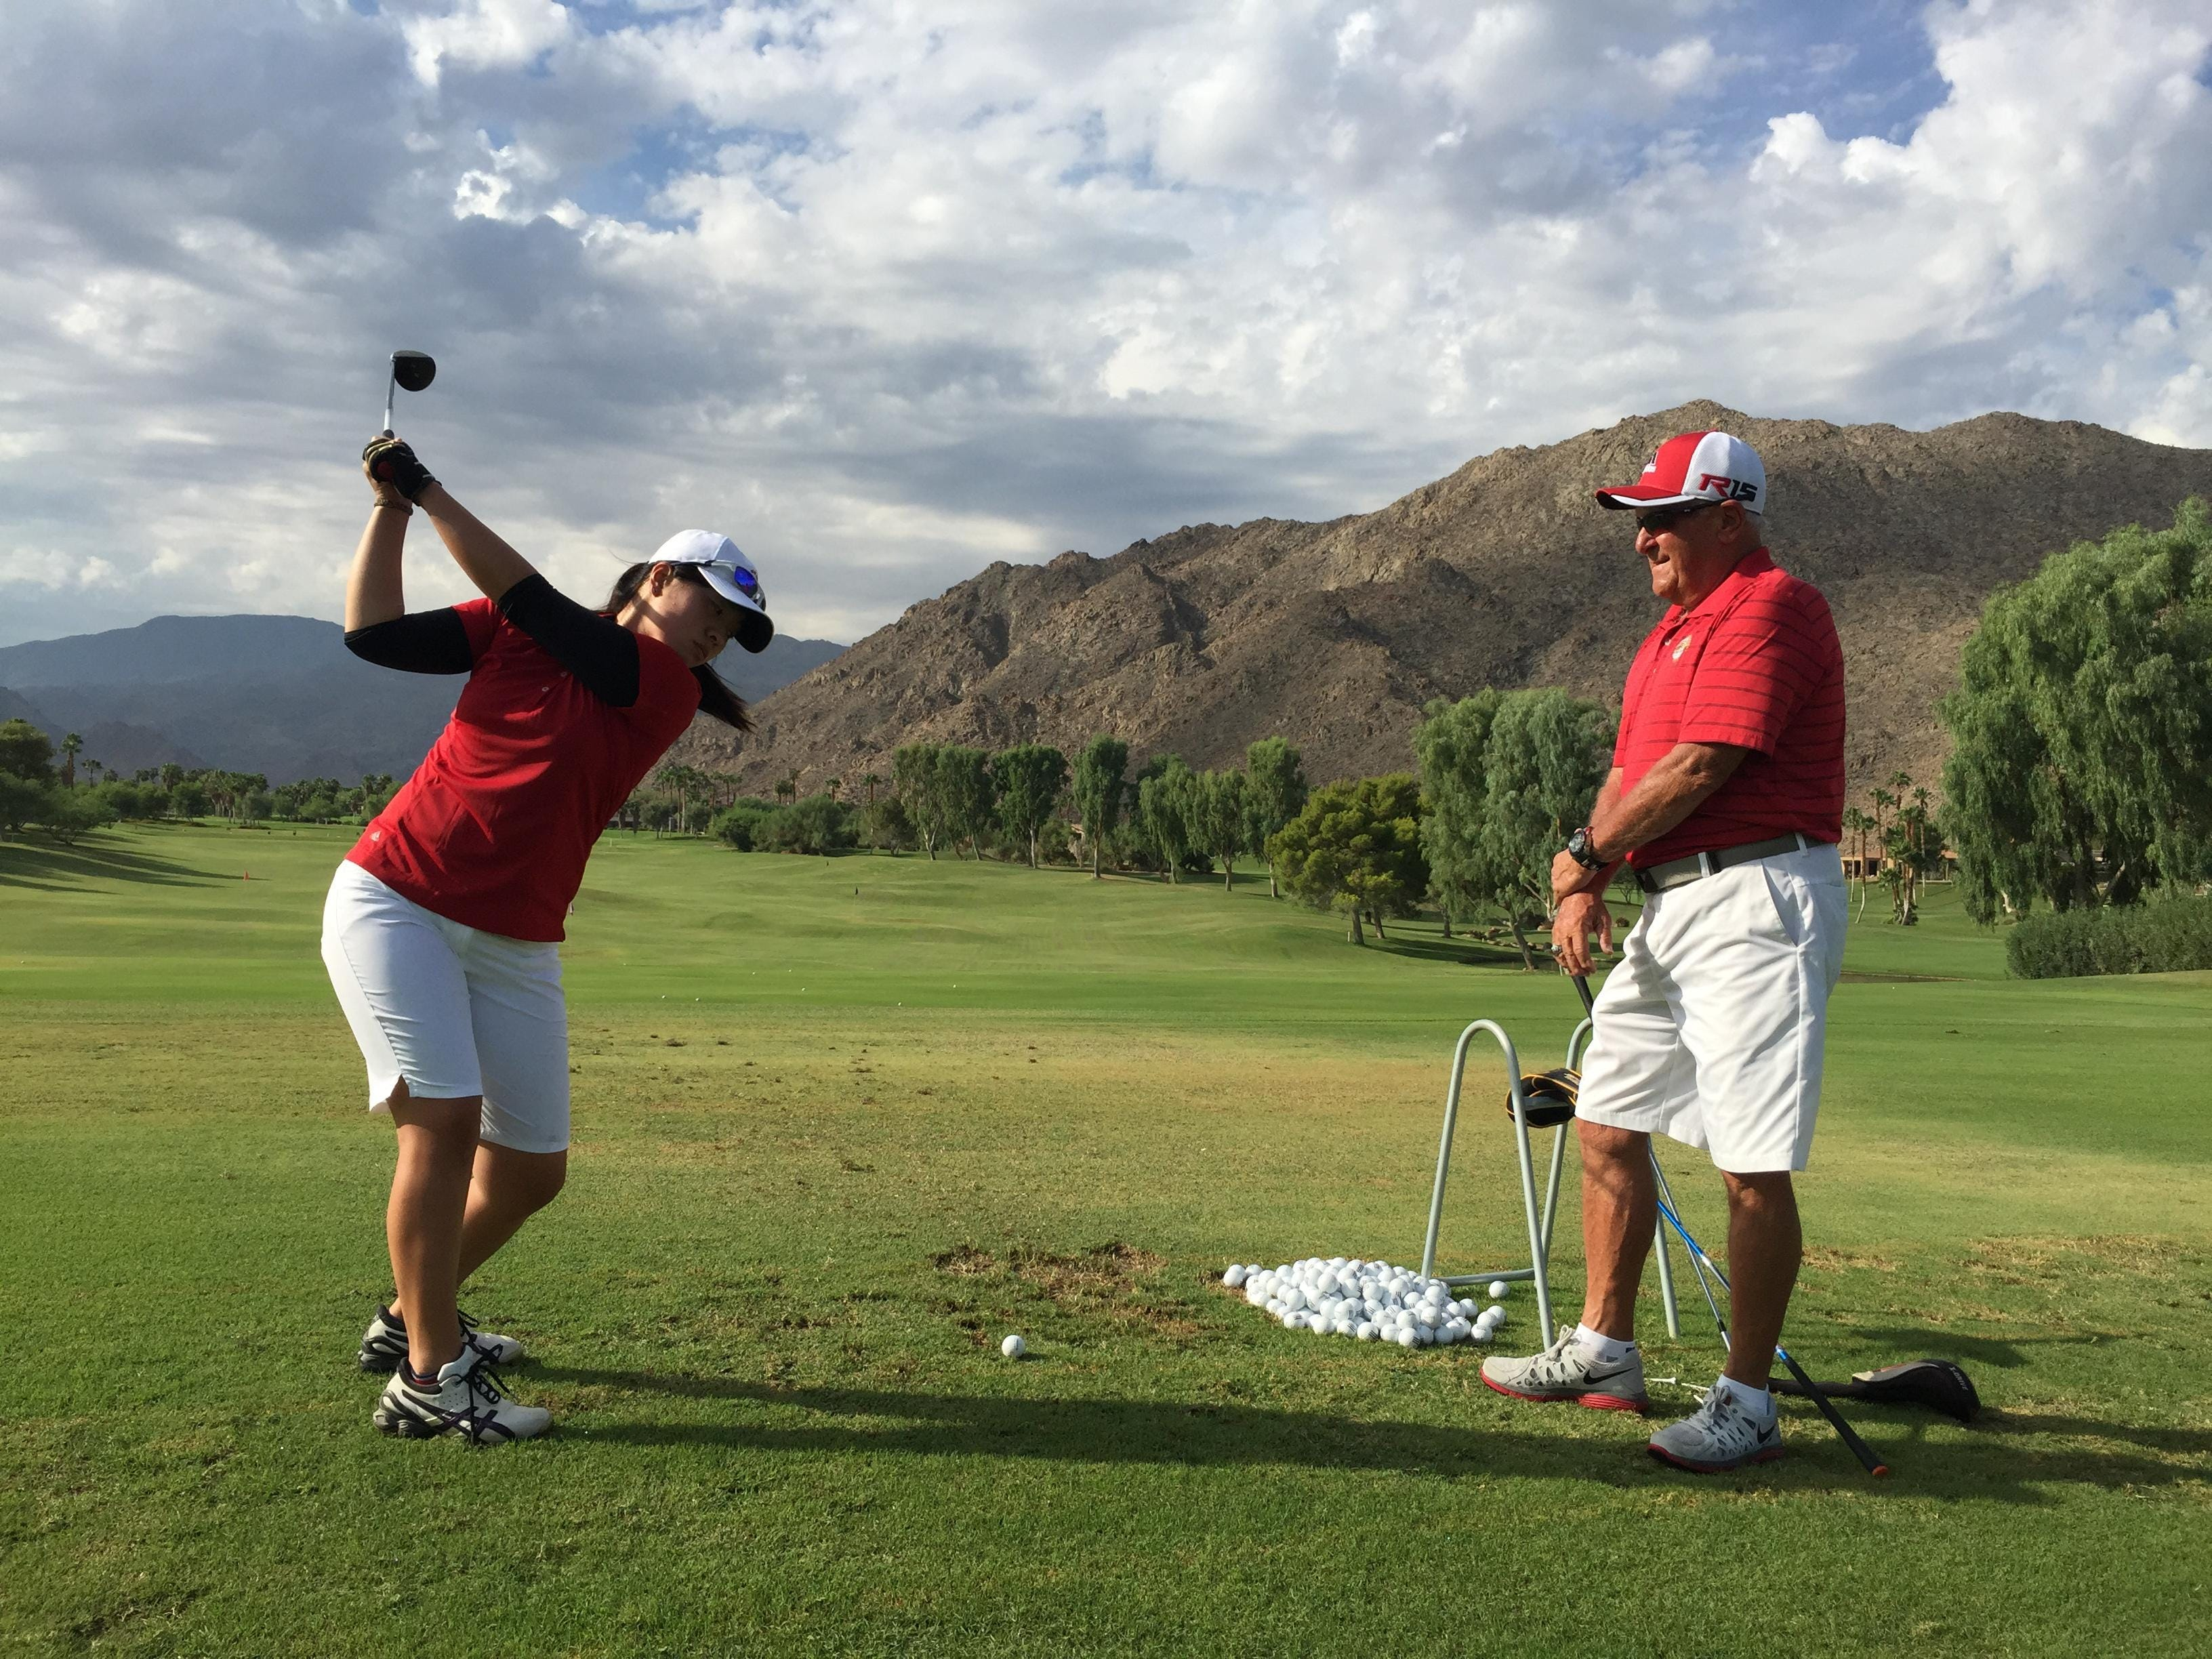 College of the Desert Roadrunners women's golf coach Gary Sabella watches his team's top player Fumika Matsumoto practicing on the driving range at Ironwood Country Club in Palm Desert. The Roadrunners at the defending state community college champions.